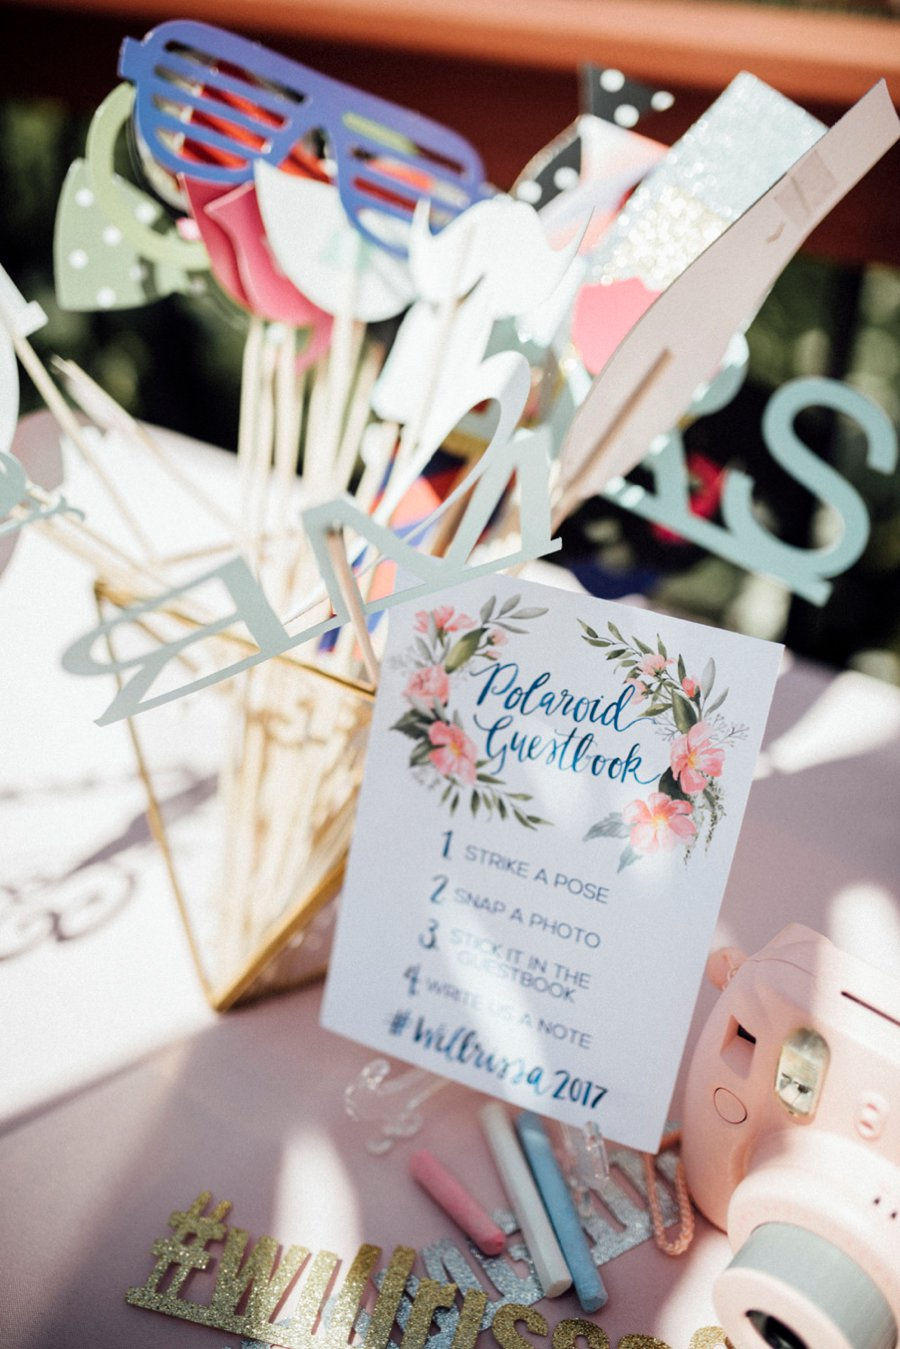 Colorful & Eclectic Surprise Chicago Brunch Wedding | Every Last Detail